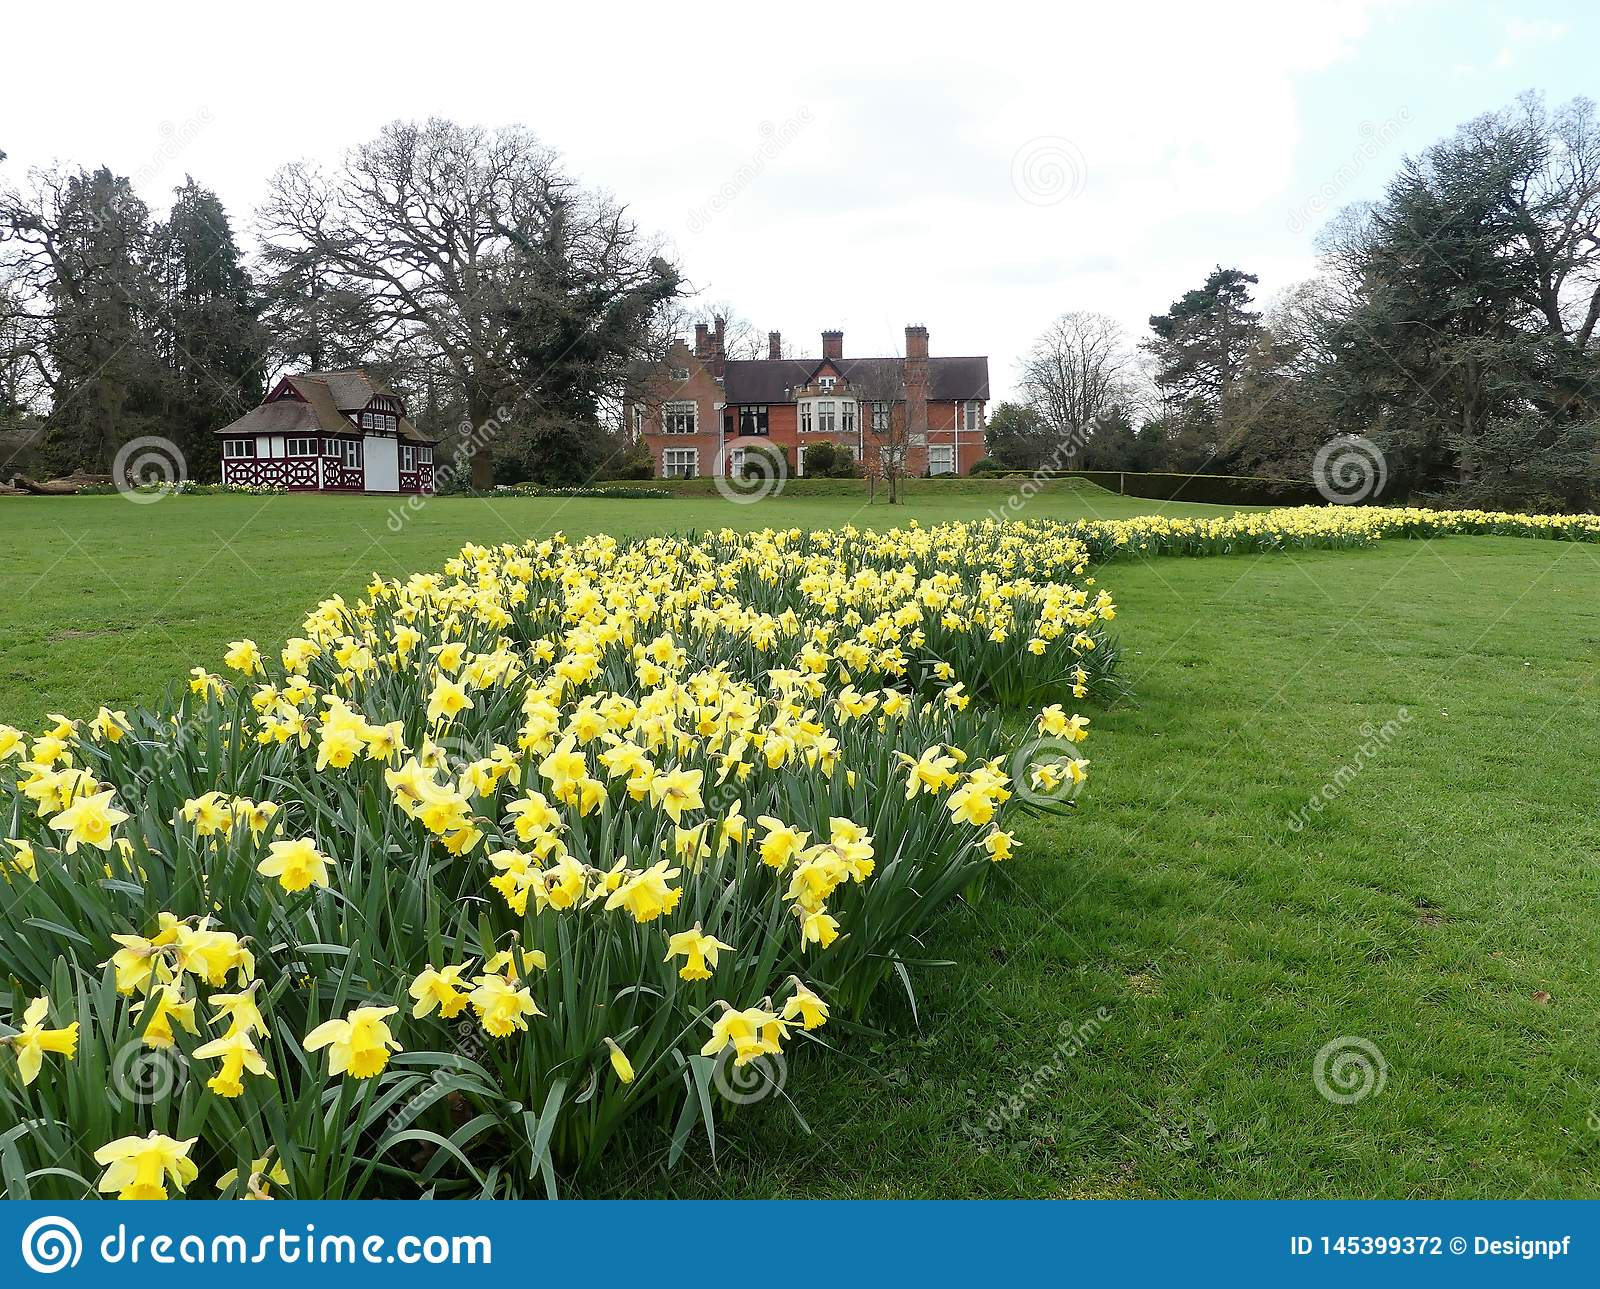 Daffodil beds at the Chorleywood House Estate, Hertfordshire